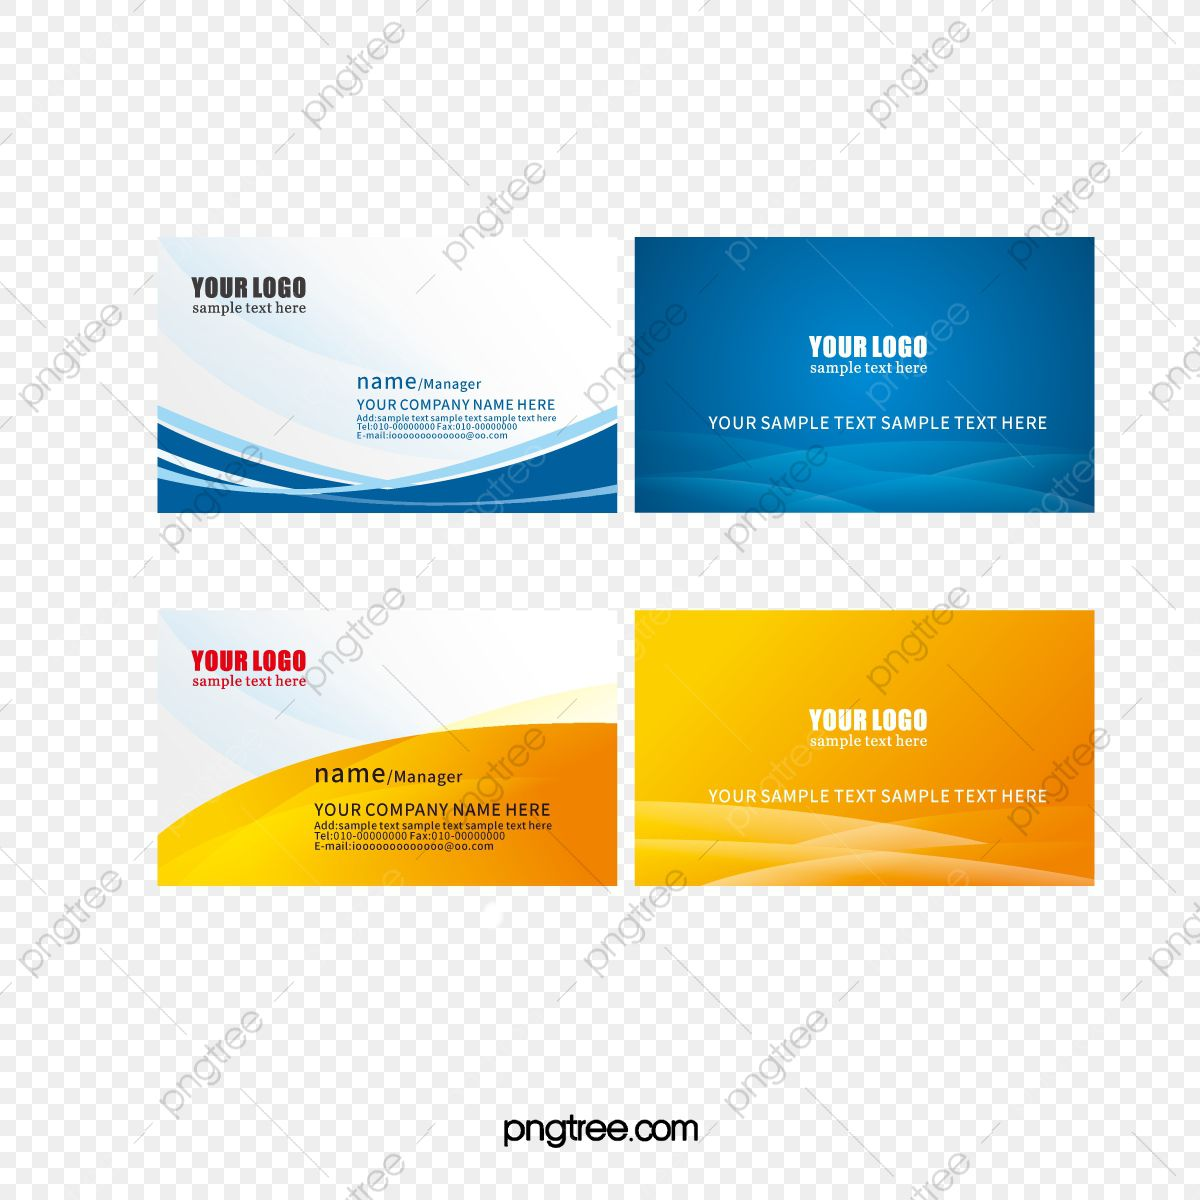 008 Best Download Busines Card Template Highest Clarity  Free For Illustrator Visiting Layout Word 2010Full